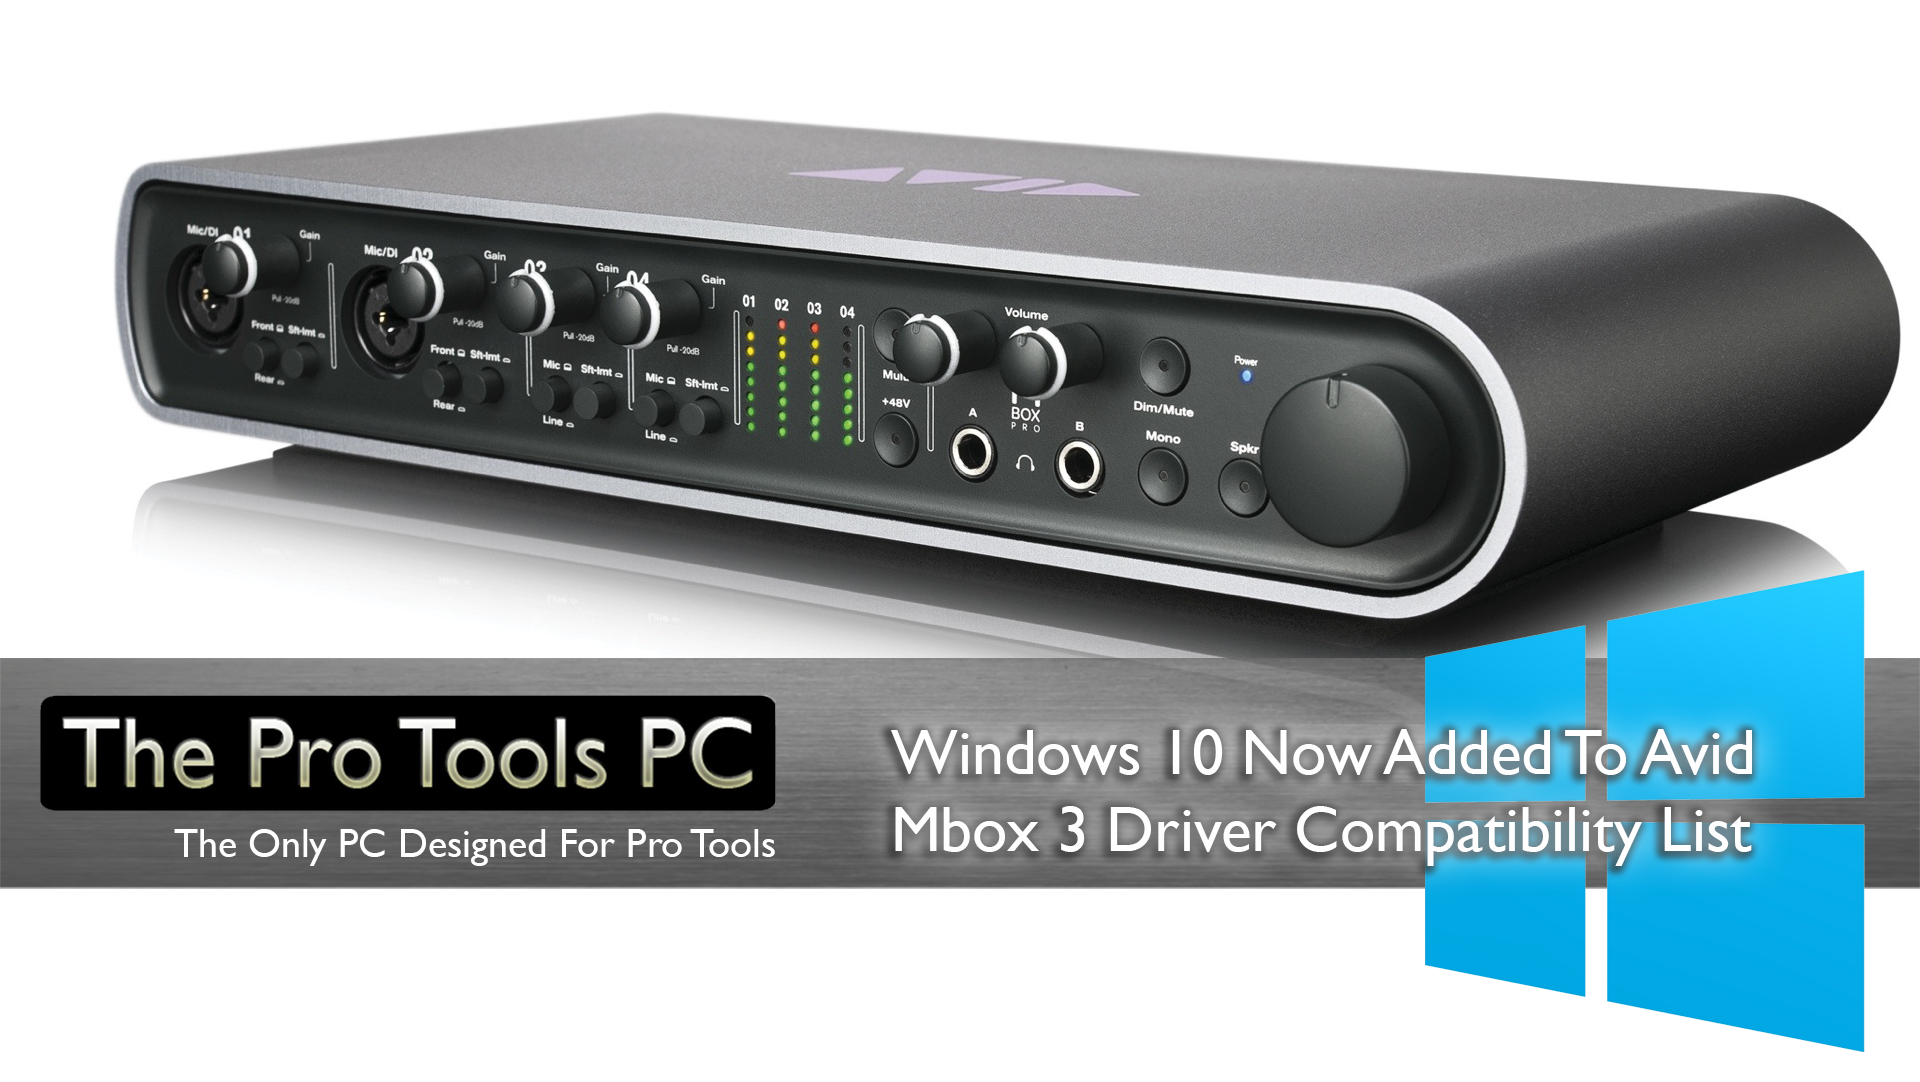 Avid Introduce Windows 10 Compatibility To 3rd Generation Mboxes